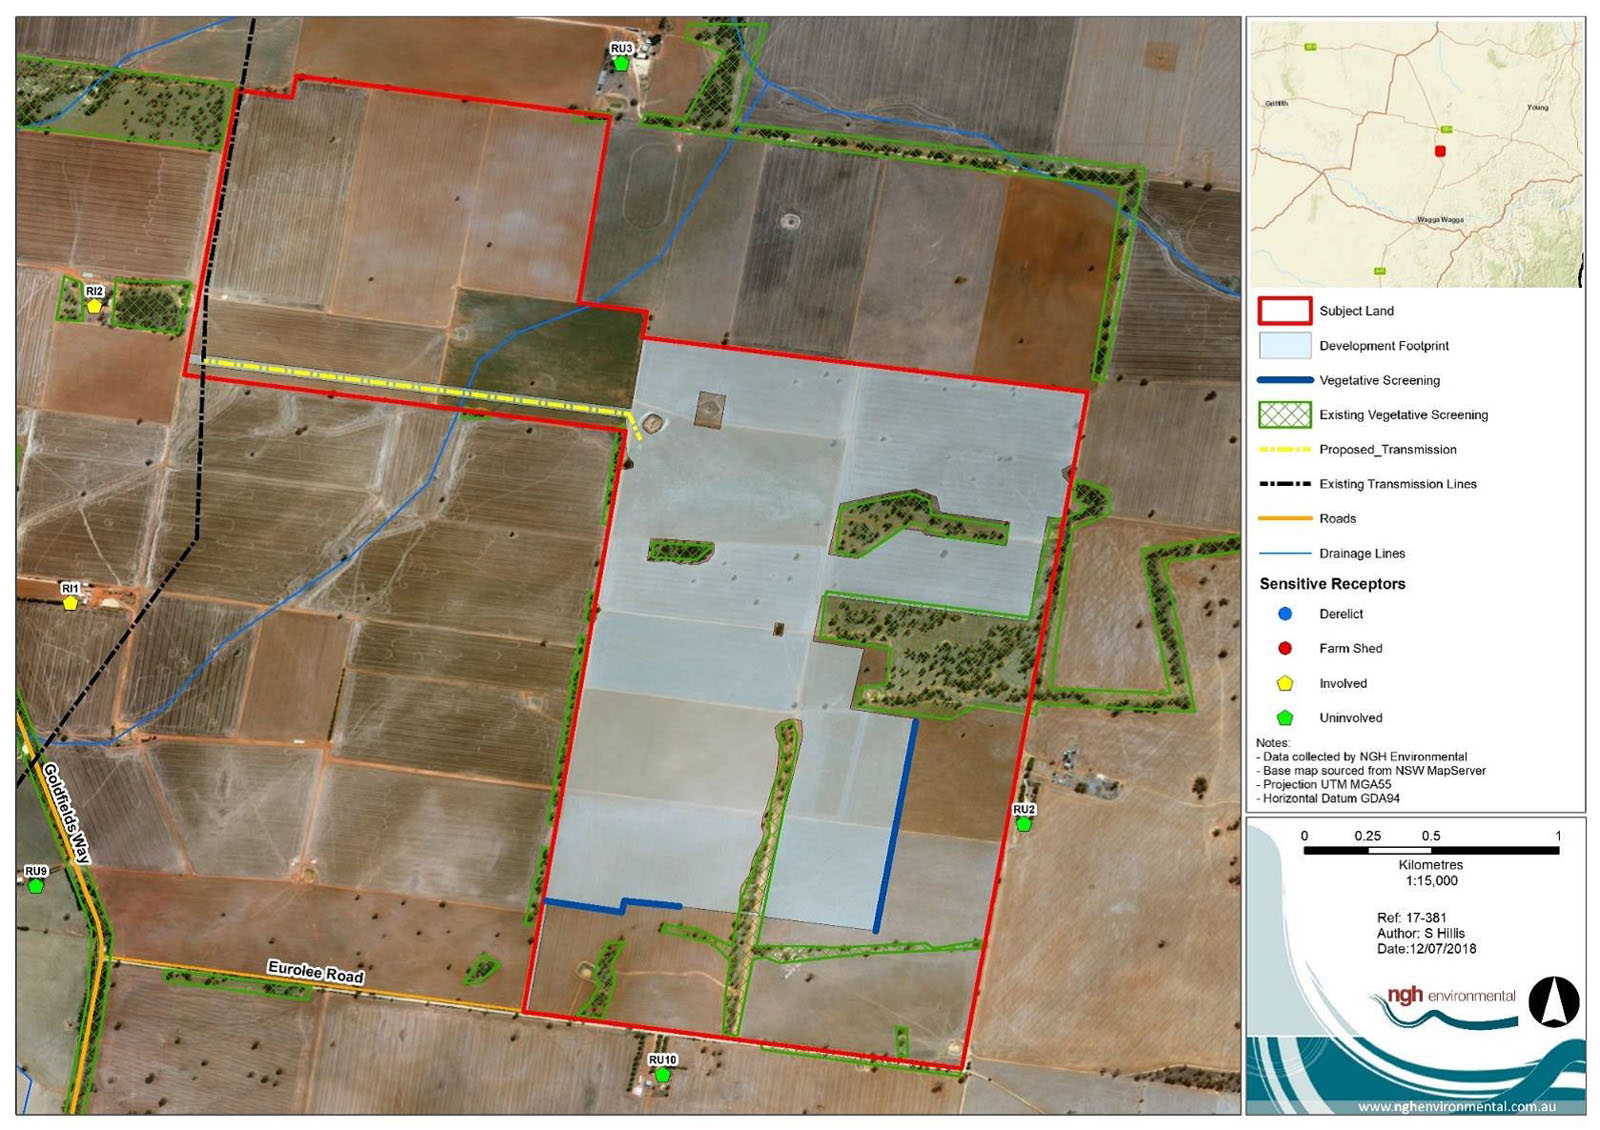 109MW Sebastopol was waved through by NSW's planning authorities in February 2019 (Credit: Ib Vogt)